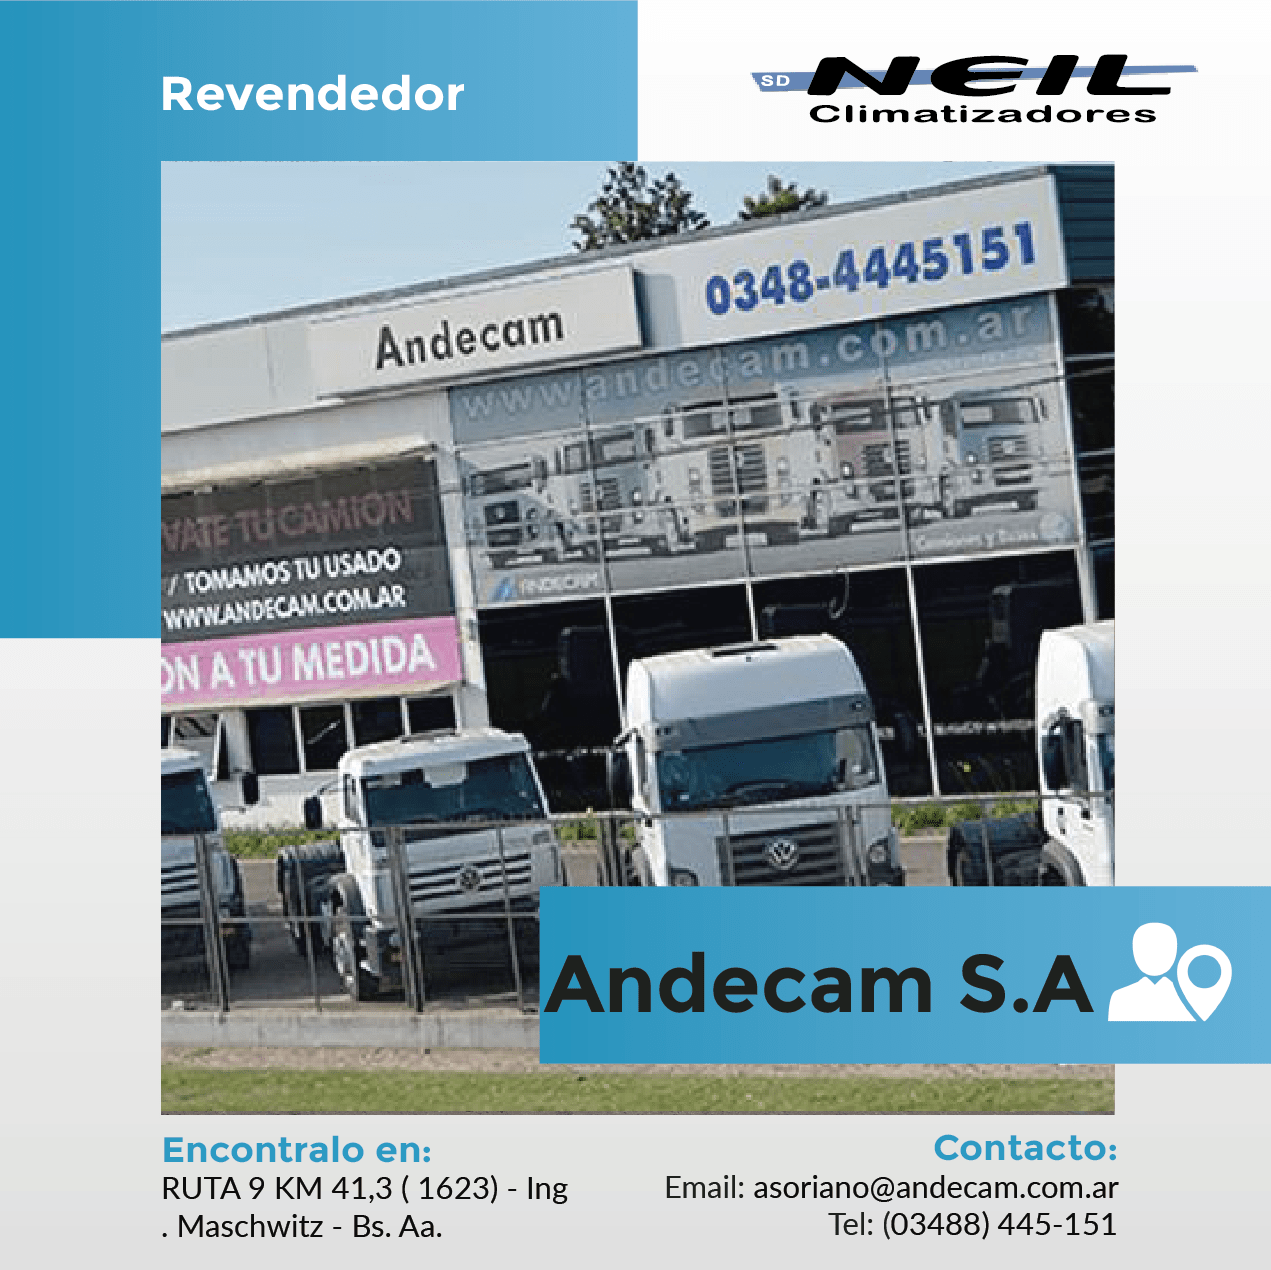 Andecam